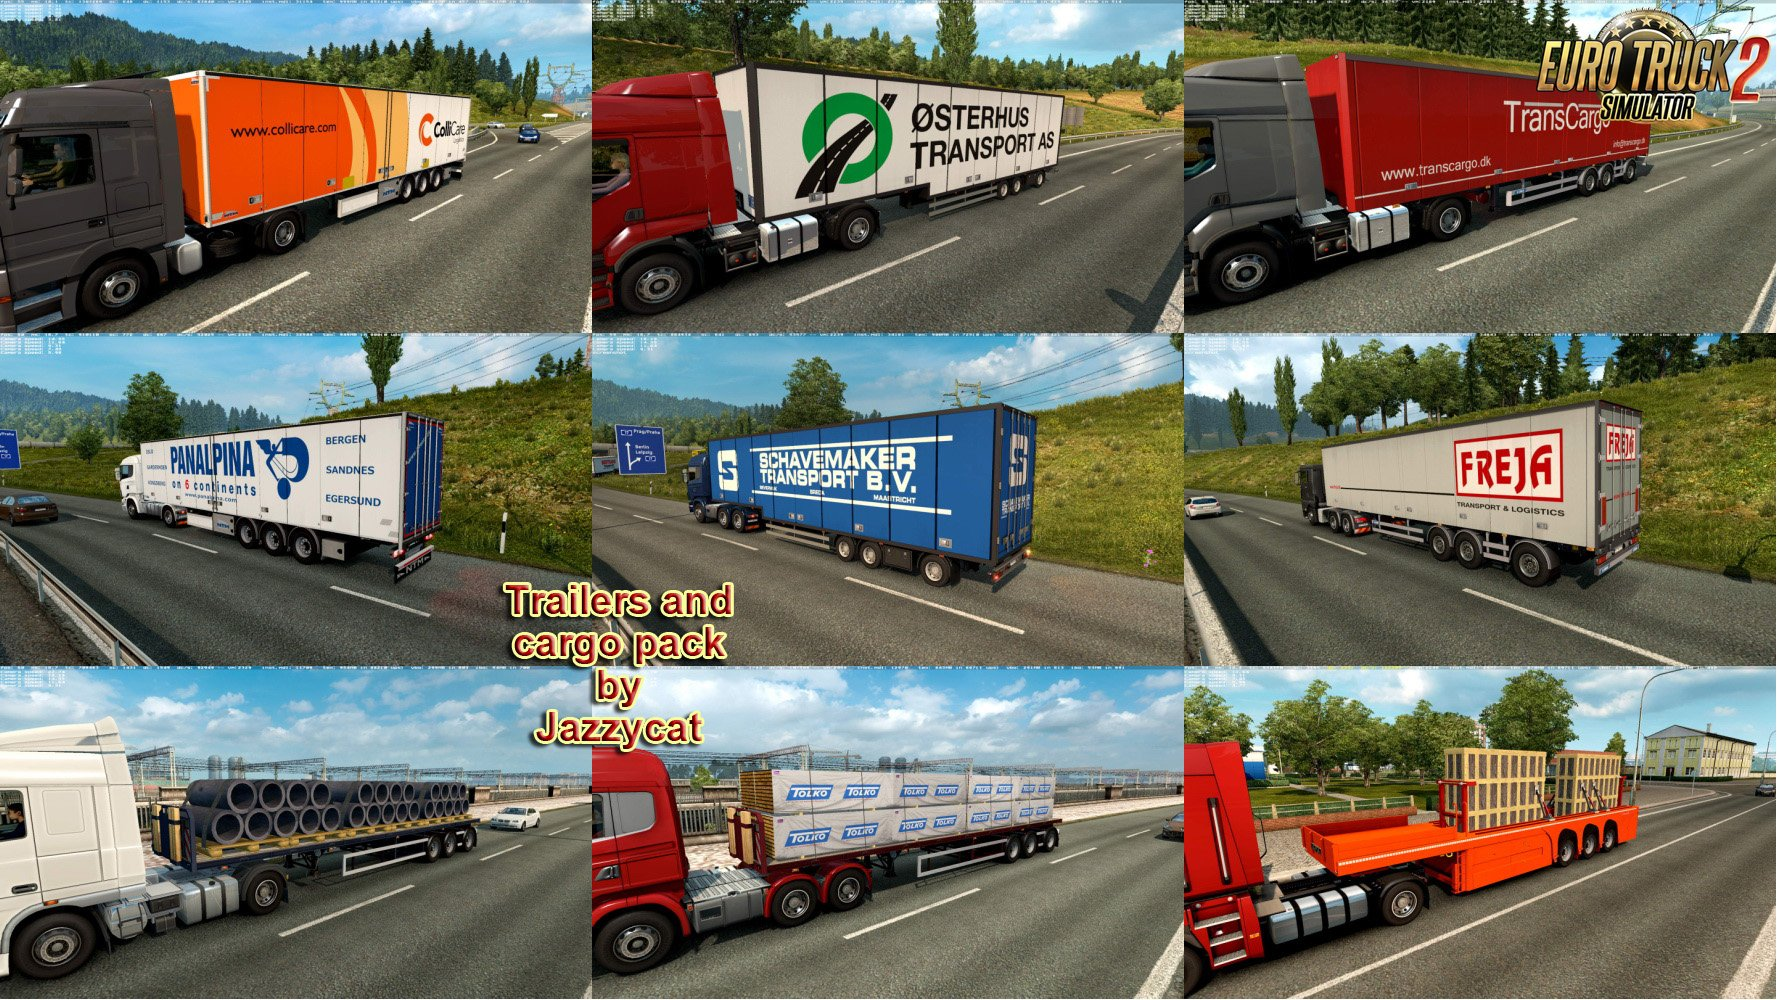 Trailers and Cargo Pack v6.2 by Jazzycat